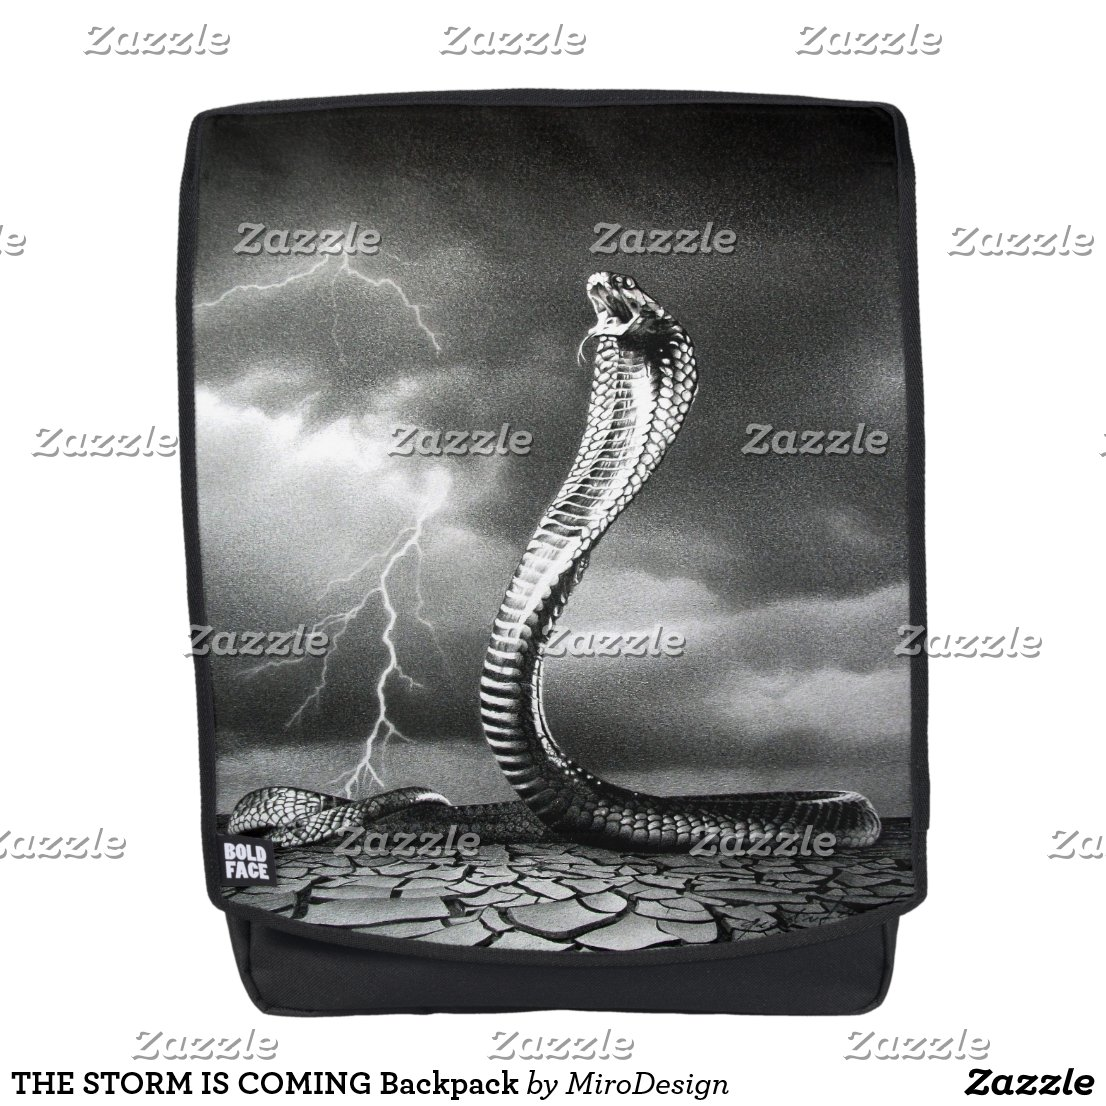 THE STORM IS COMING Backpack